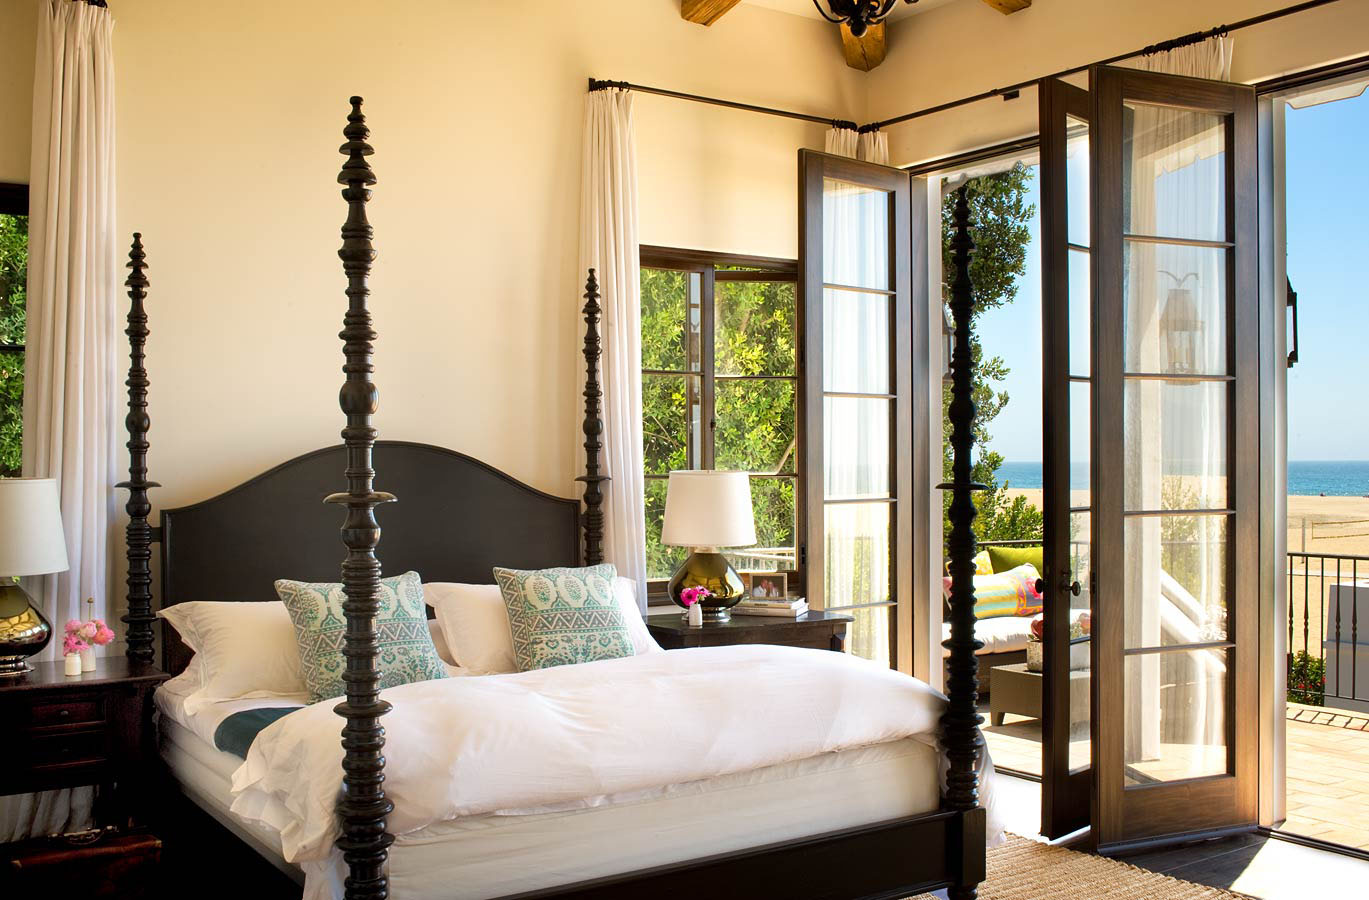 Spanish colonial beach house in santa monica idesignarch for Spanish style bedroom